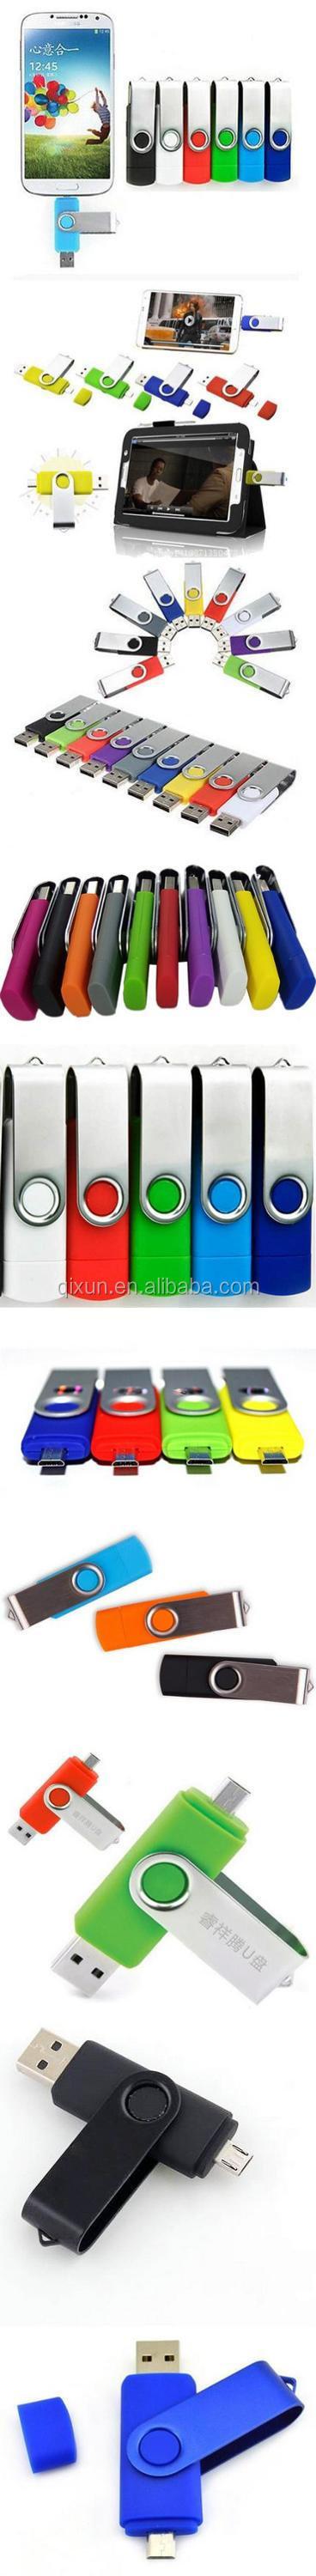 bulk factory price otg usb 3.0 flash drive16gb assurance order and paypal accept